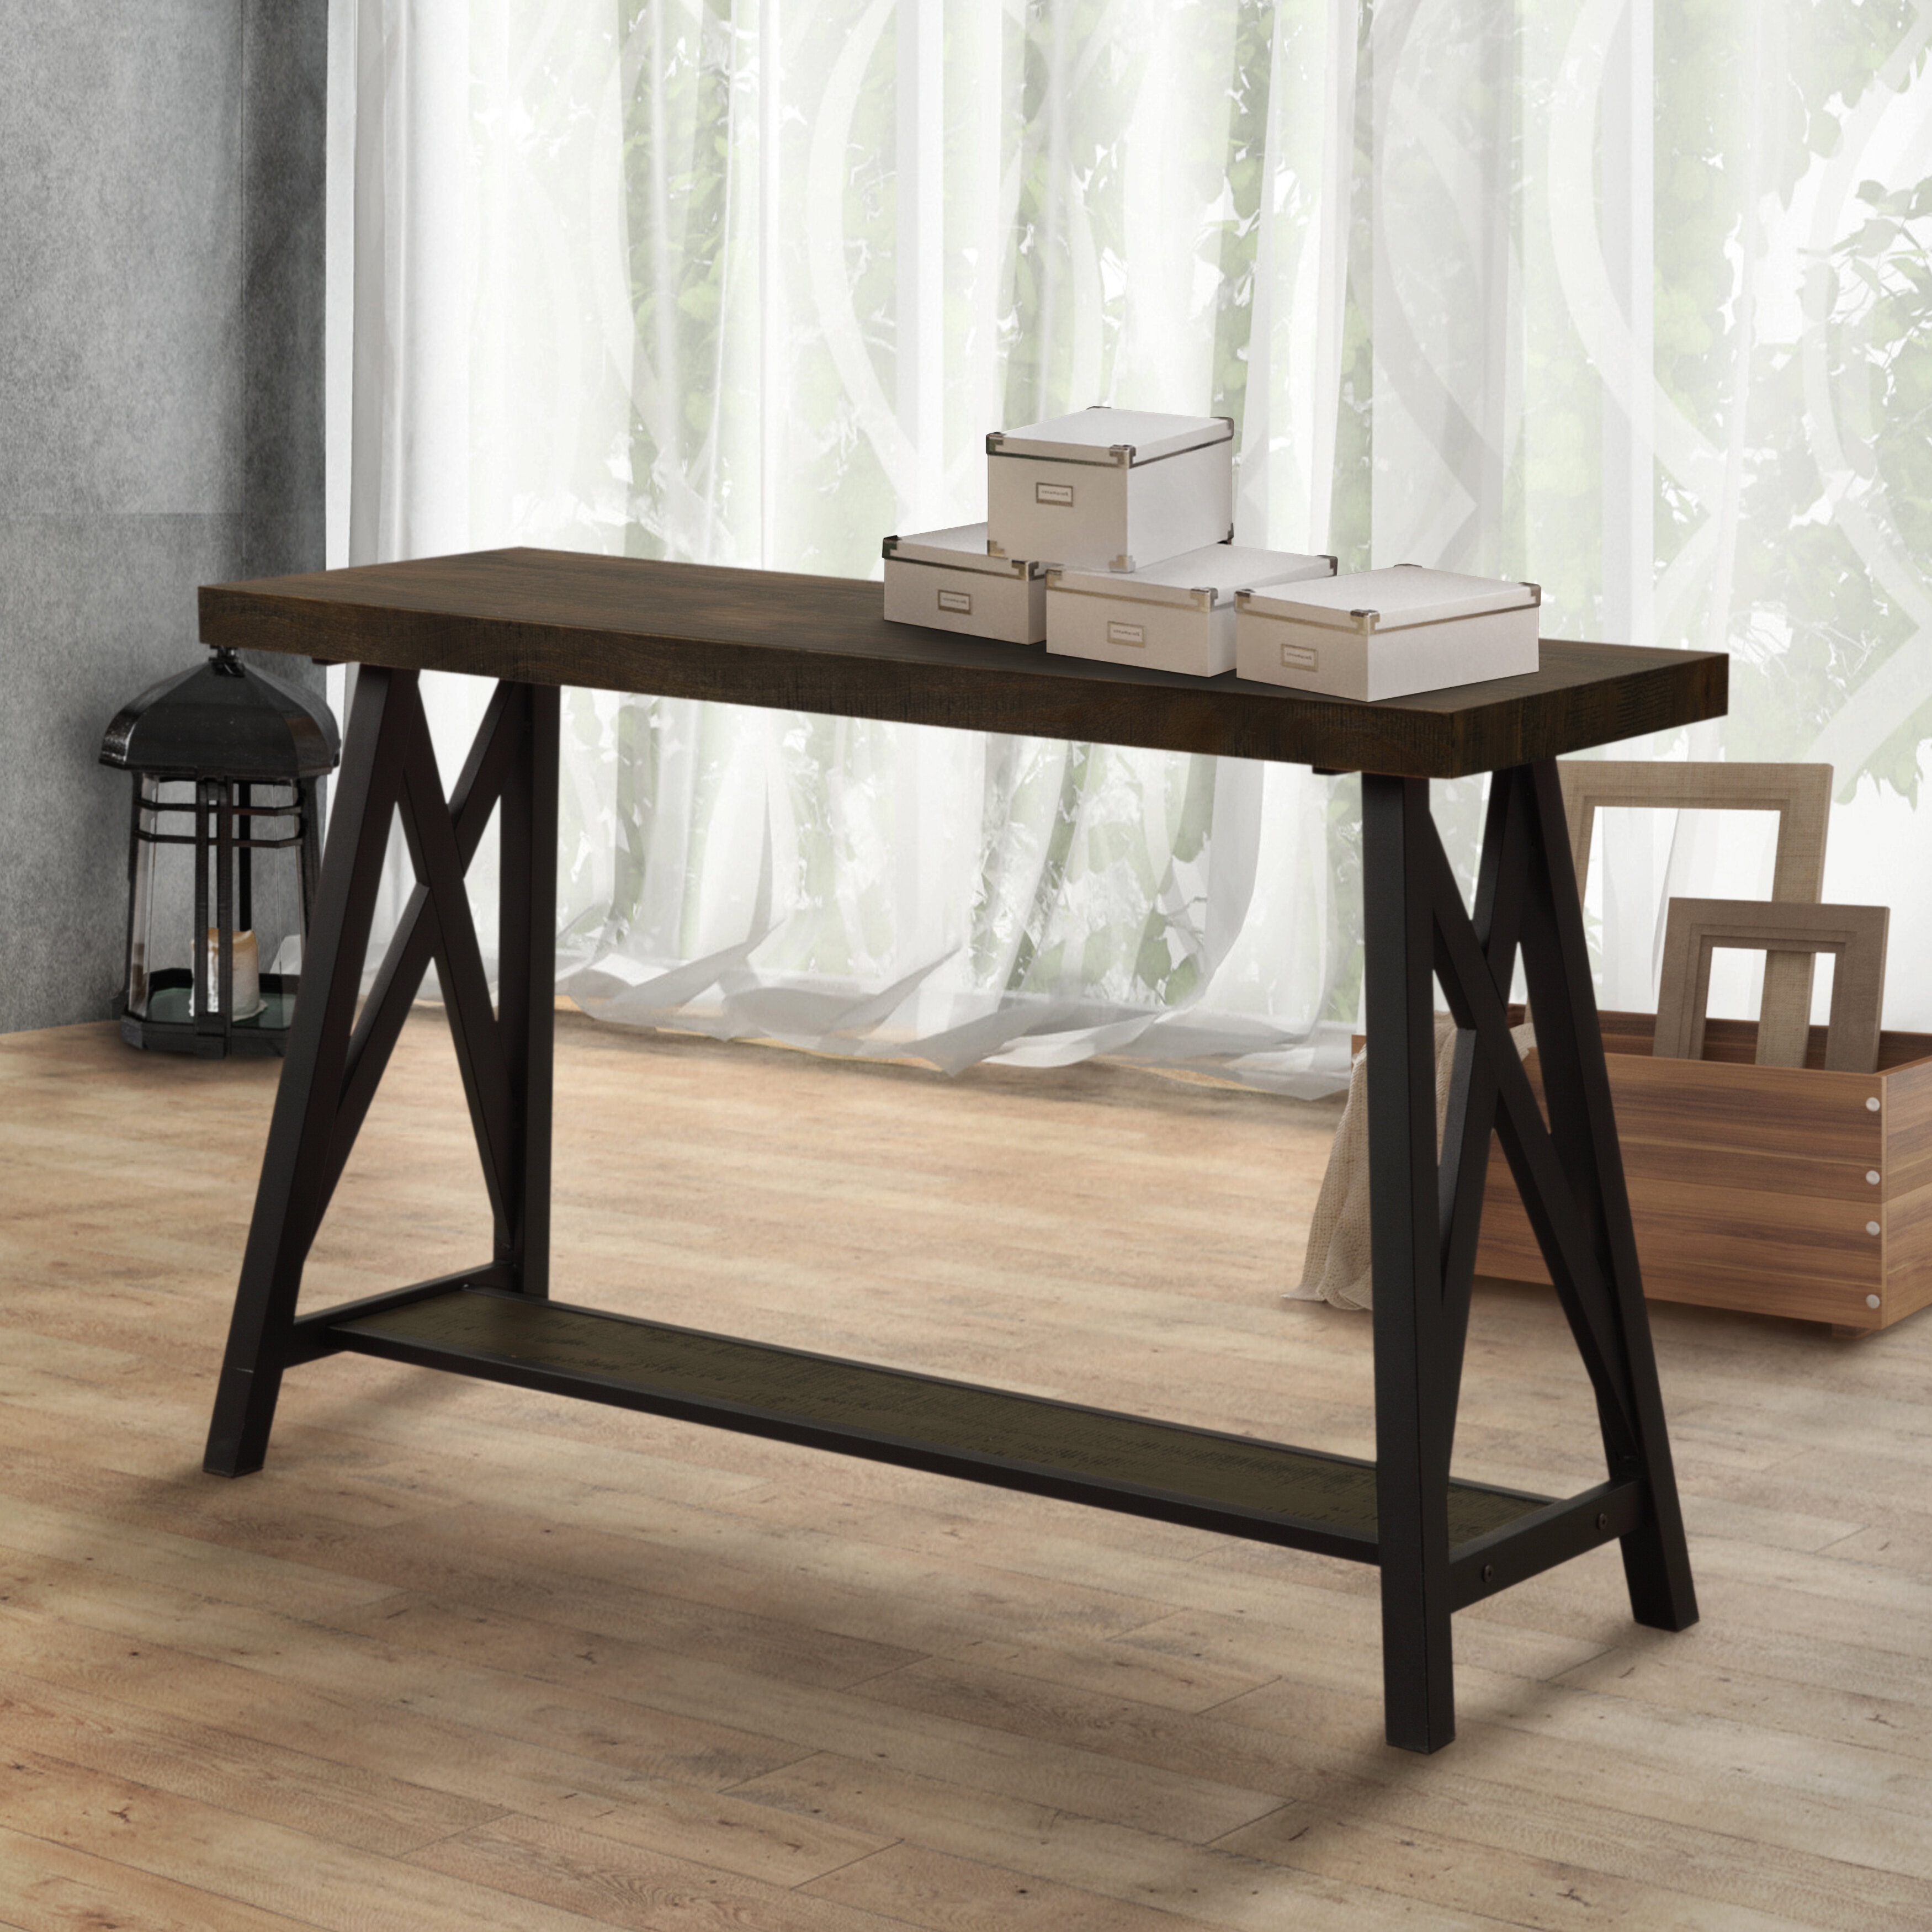 Gracie oaks mayur industrial console table wayfair